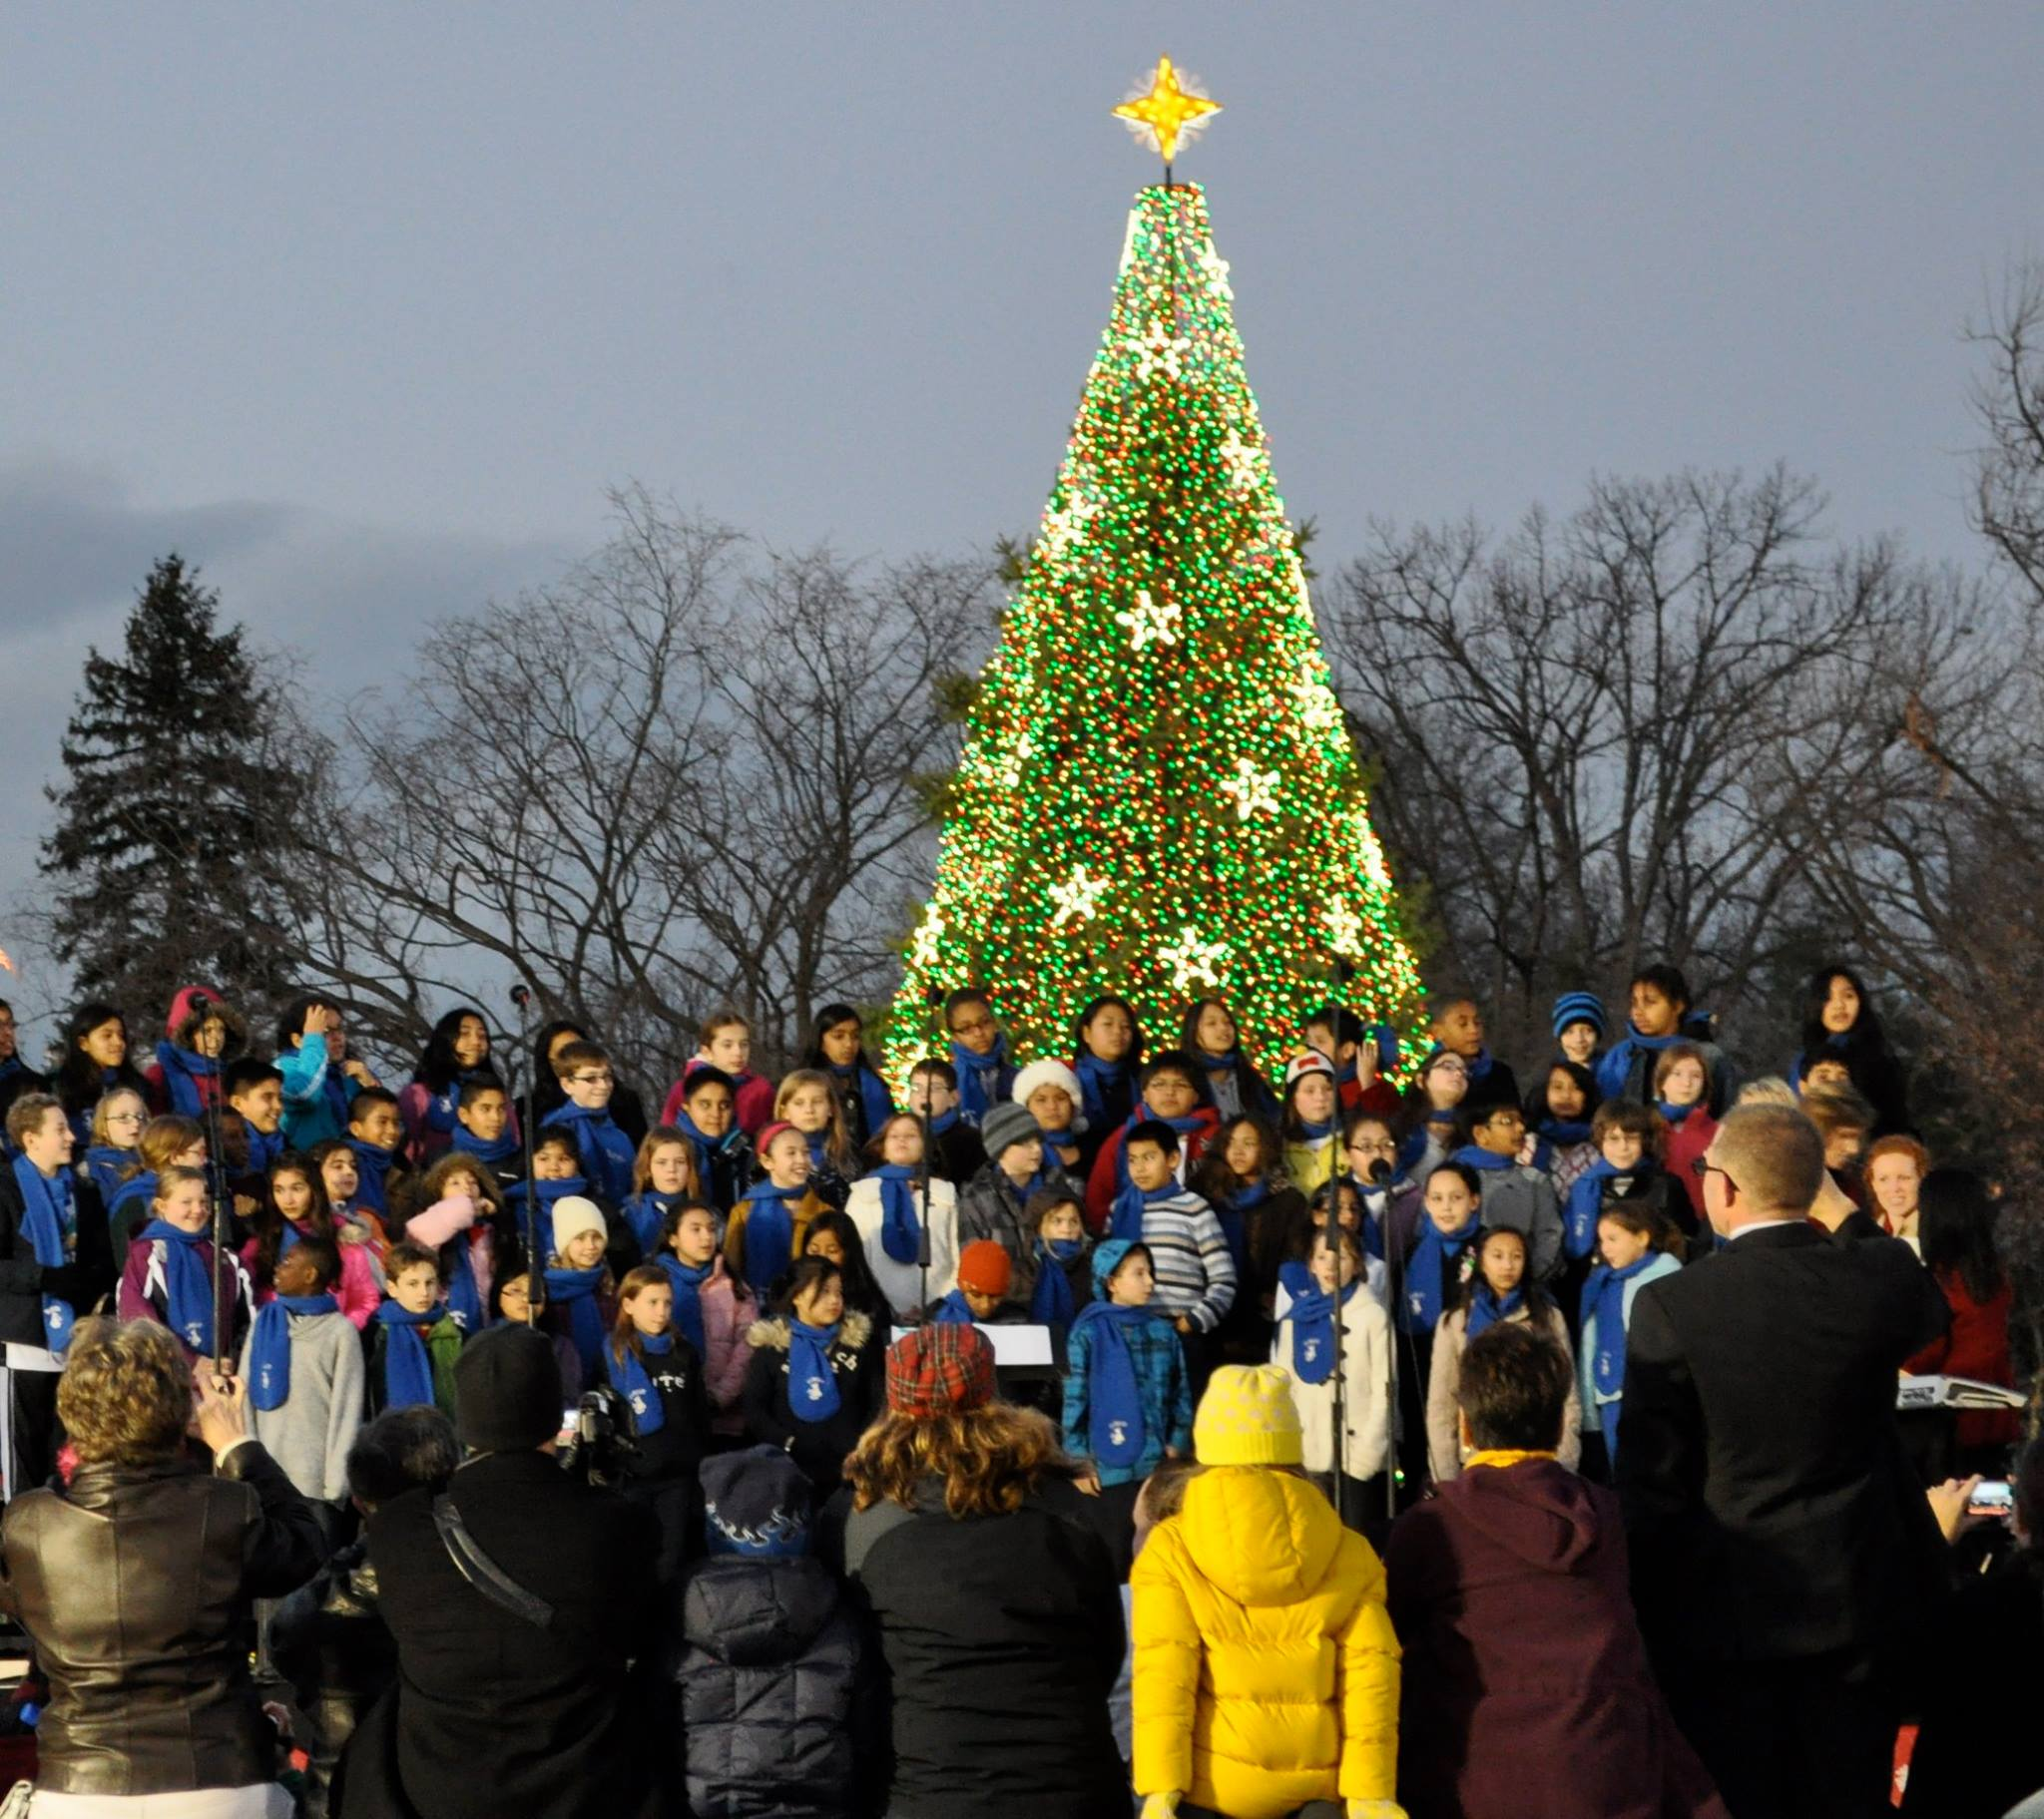 A choir sings in front of the National Christmas Tree, during the 2013 music program, while visitors take pictures